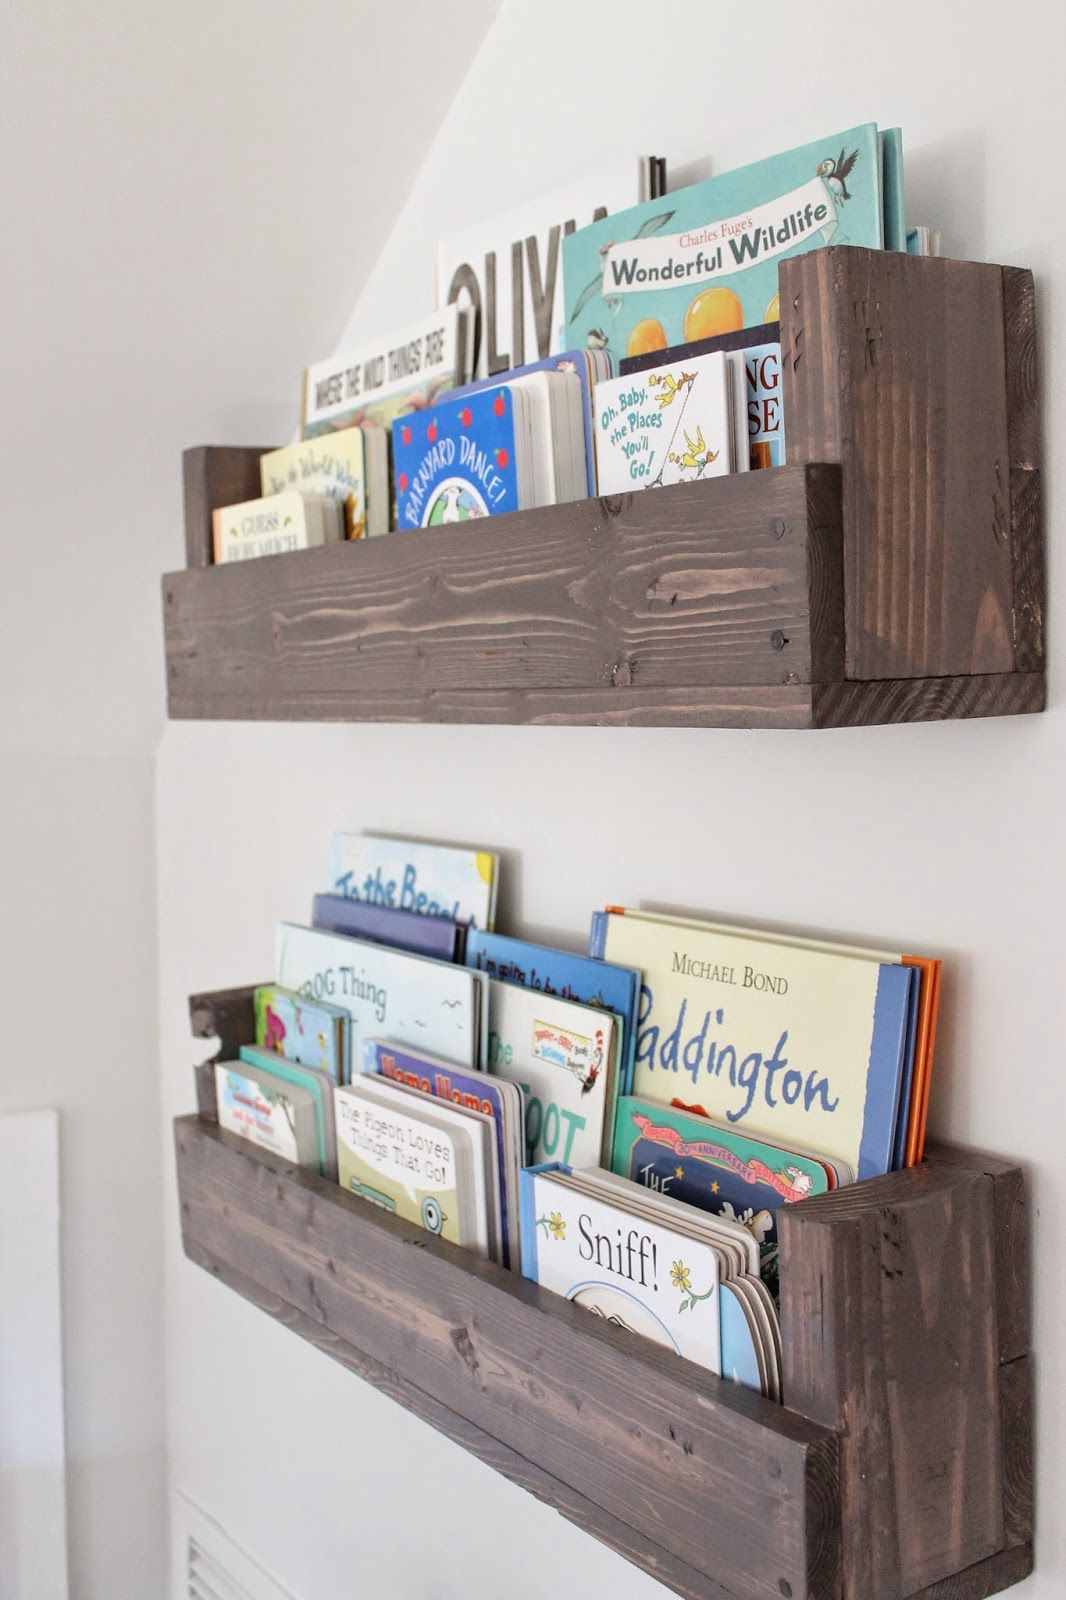 3 basic woodworking tips to help you get started -   book nooks